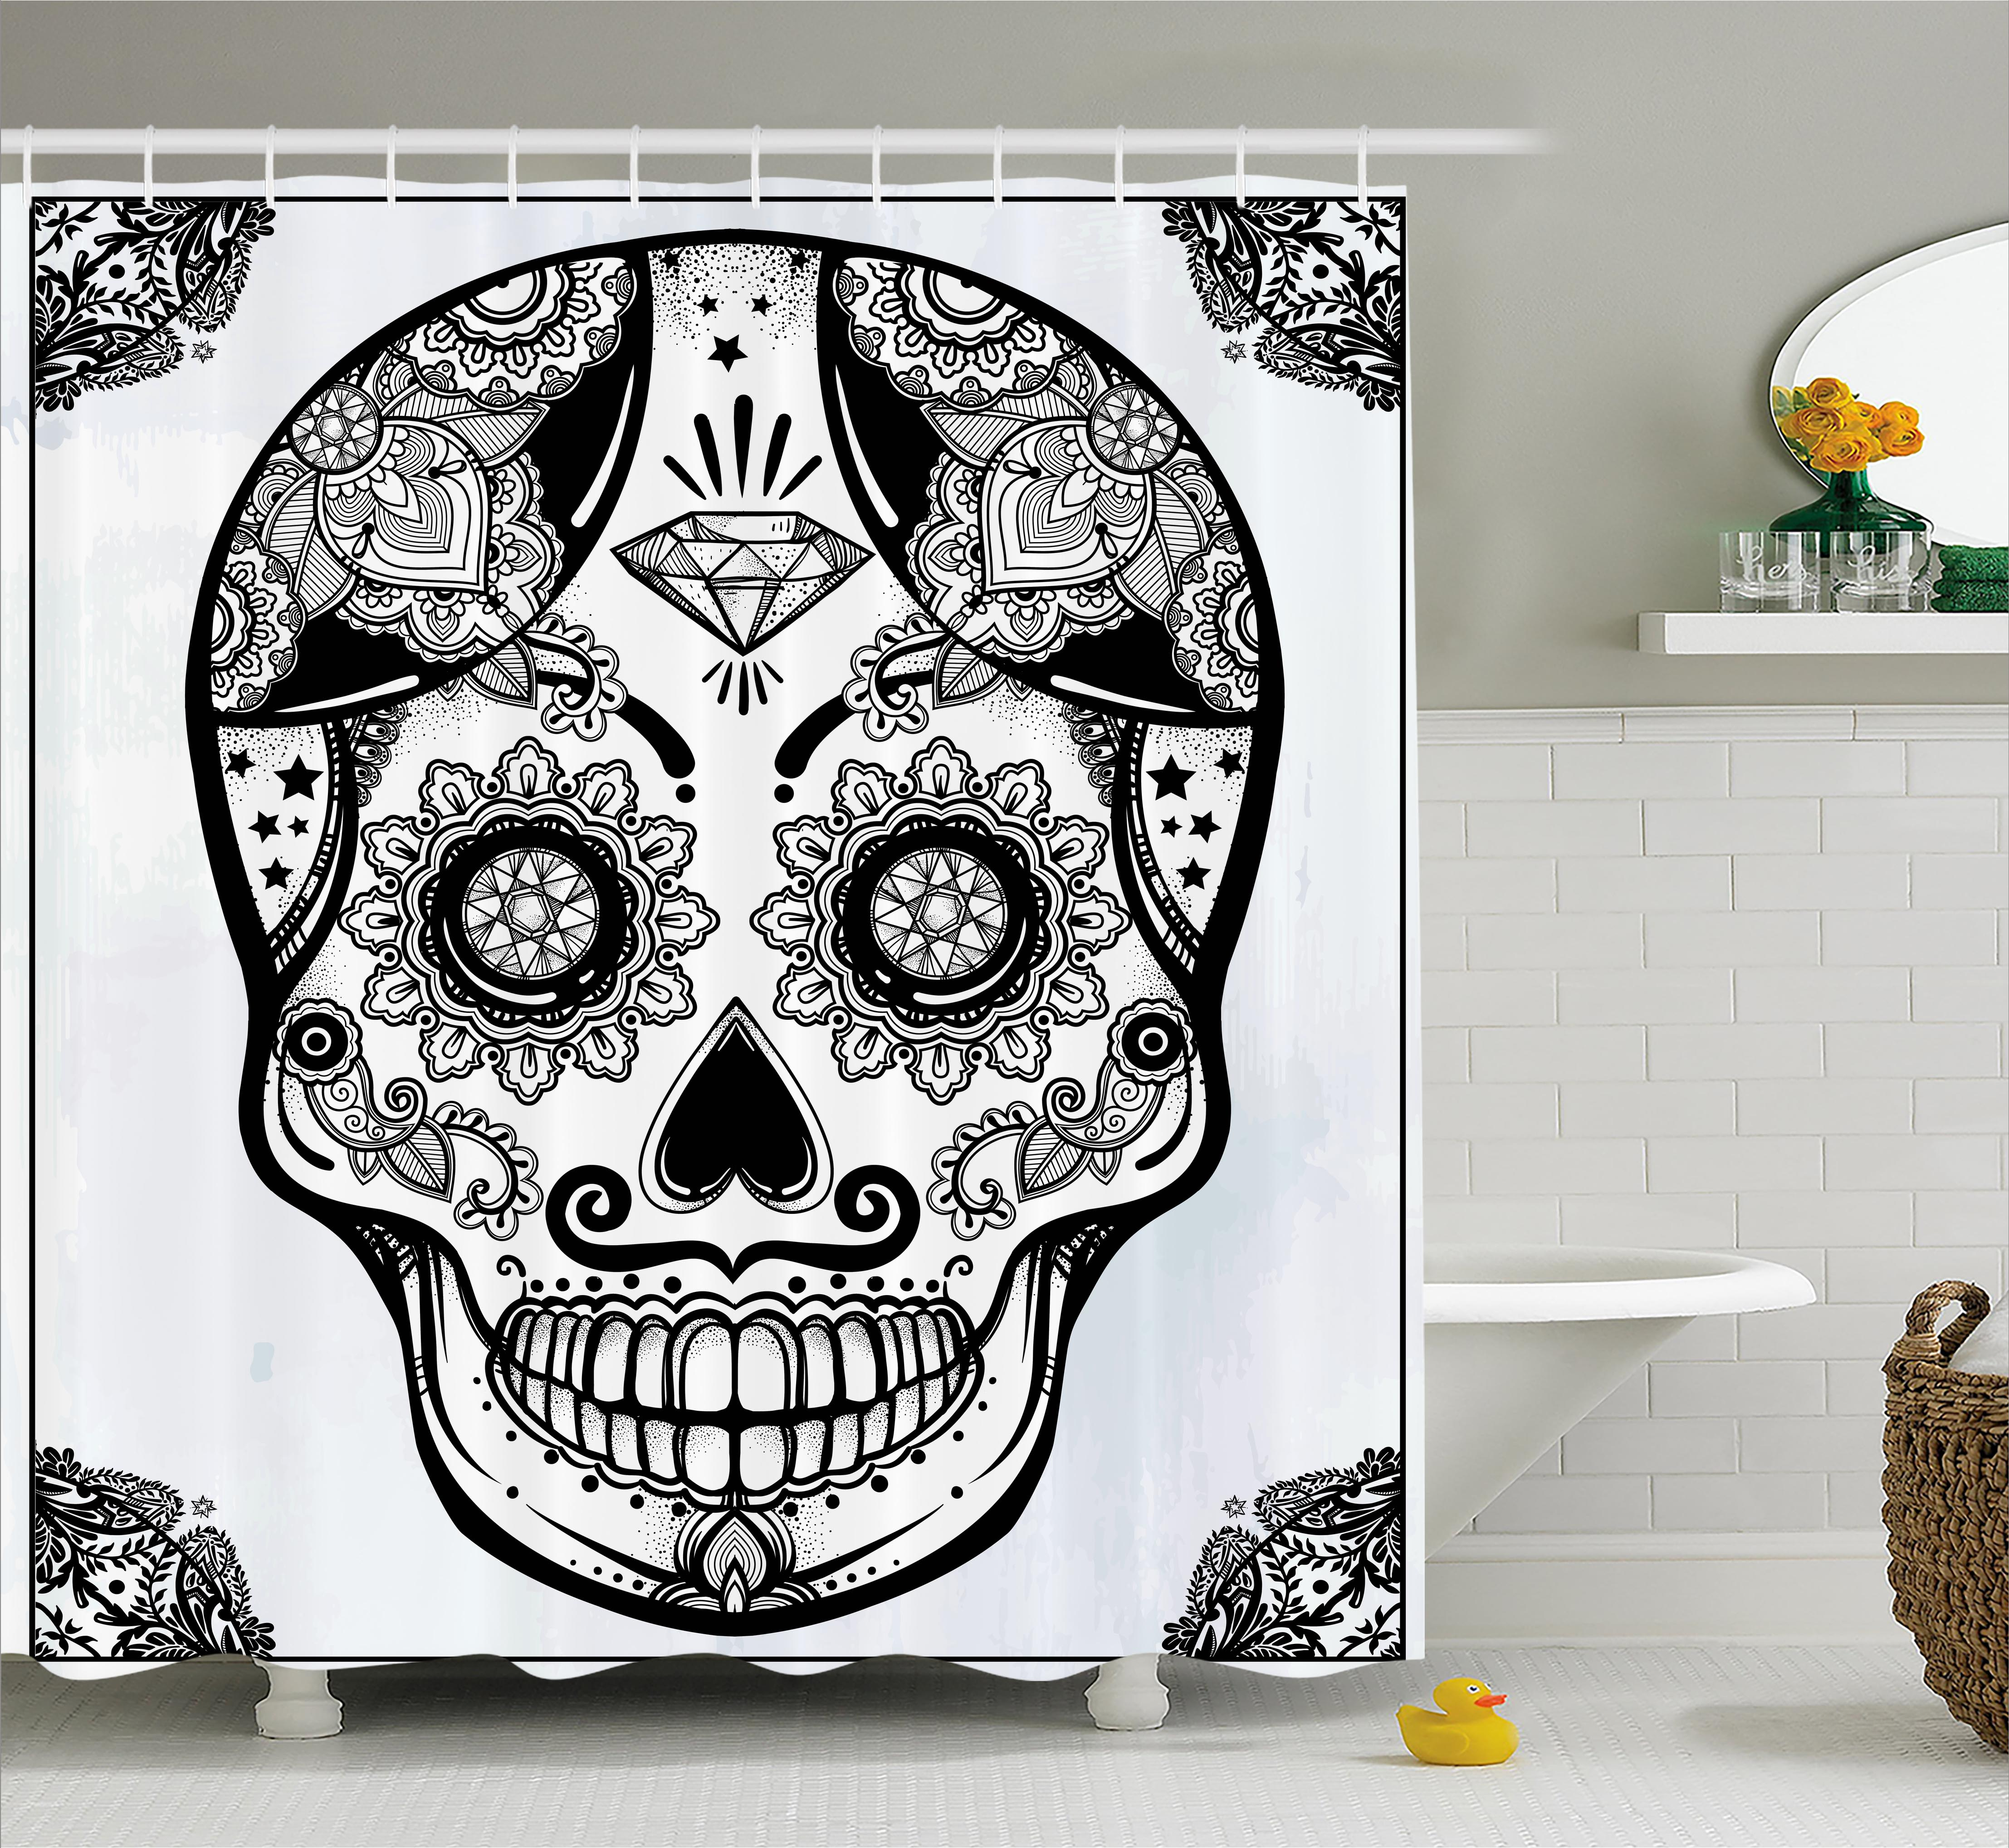 Day Of The Dead Decor Shower Curtain, Holiday Sugar Skull Print With Floral  Mandala Spanish